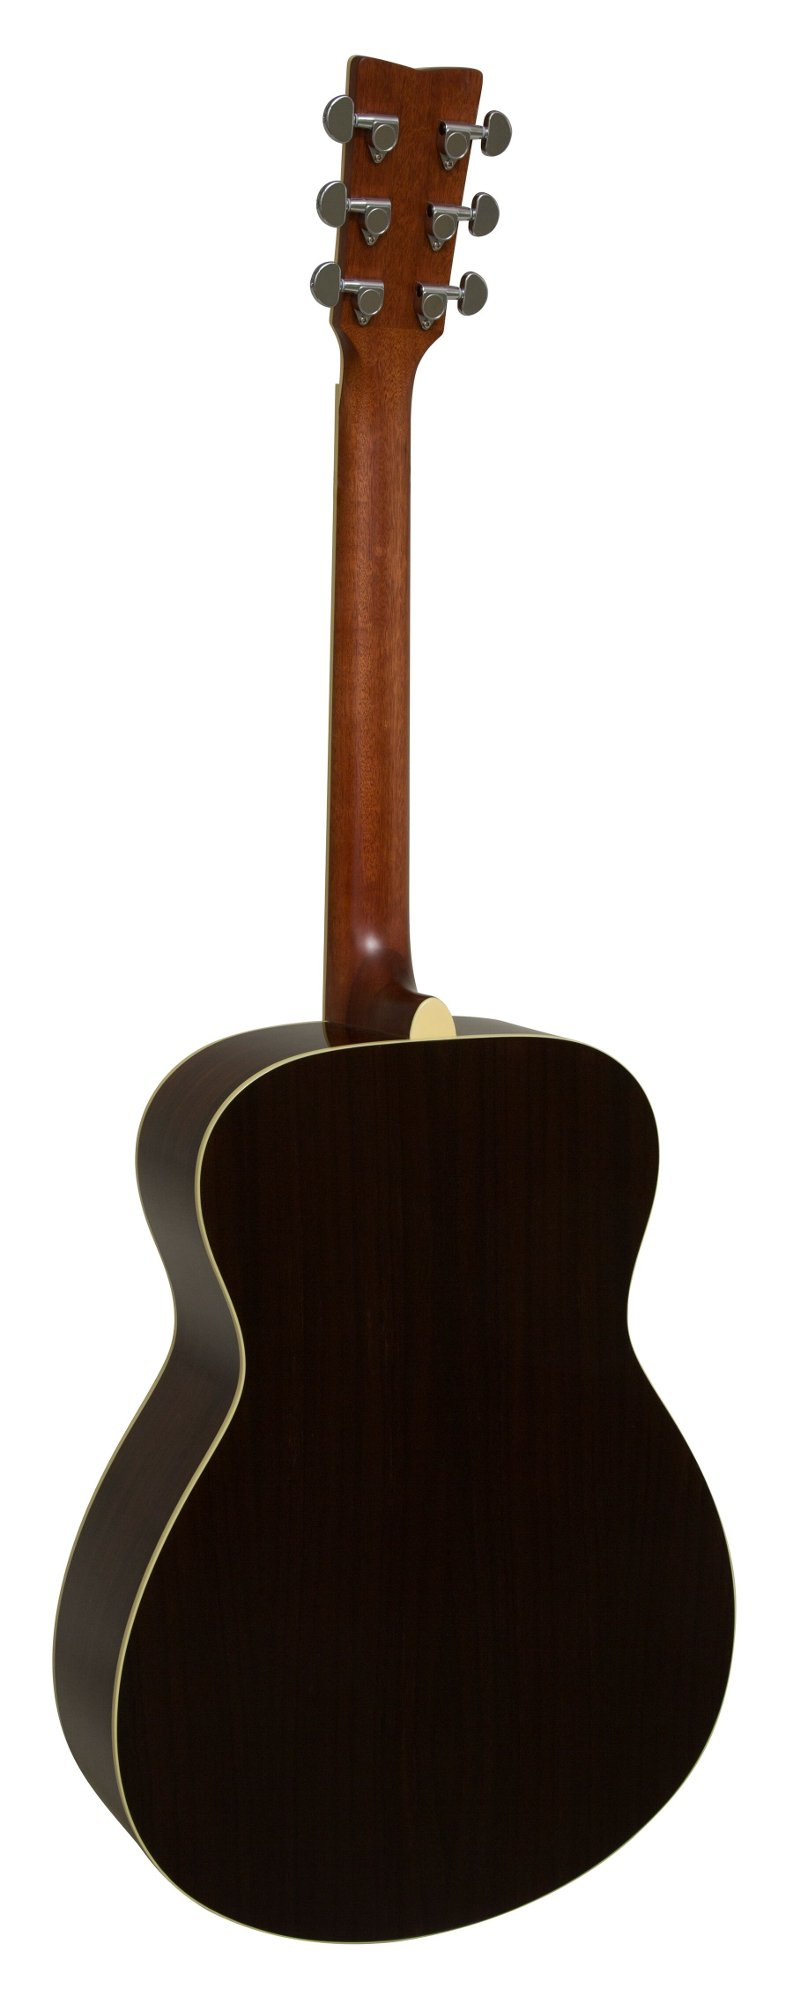 Thin Profile Acoustic Guitar with Solid Sitka Spruce Top, Rosewood Back and Sides